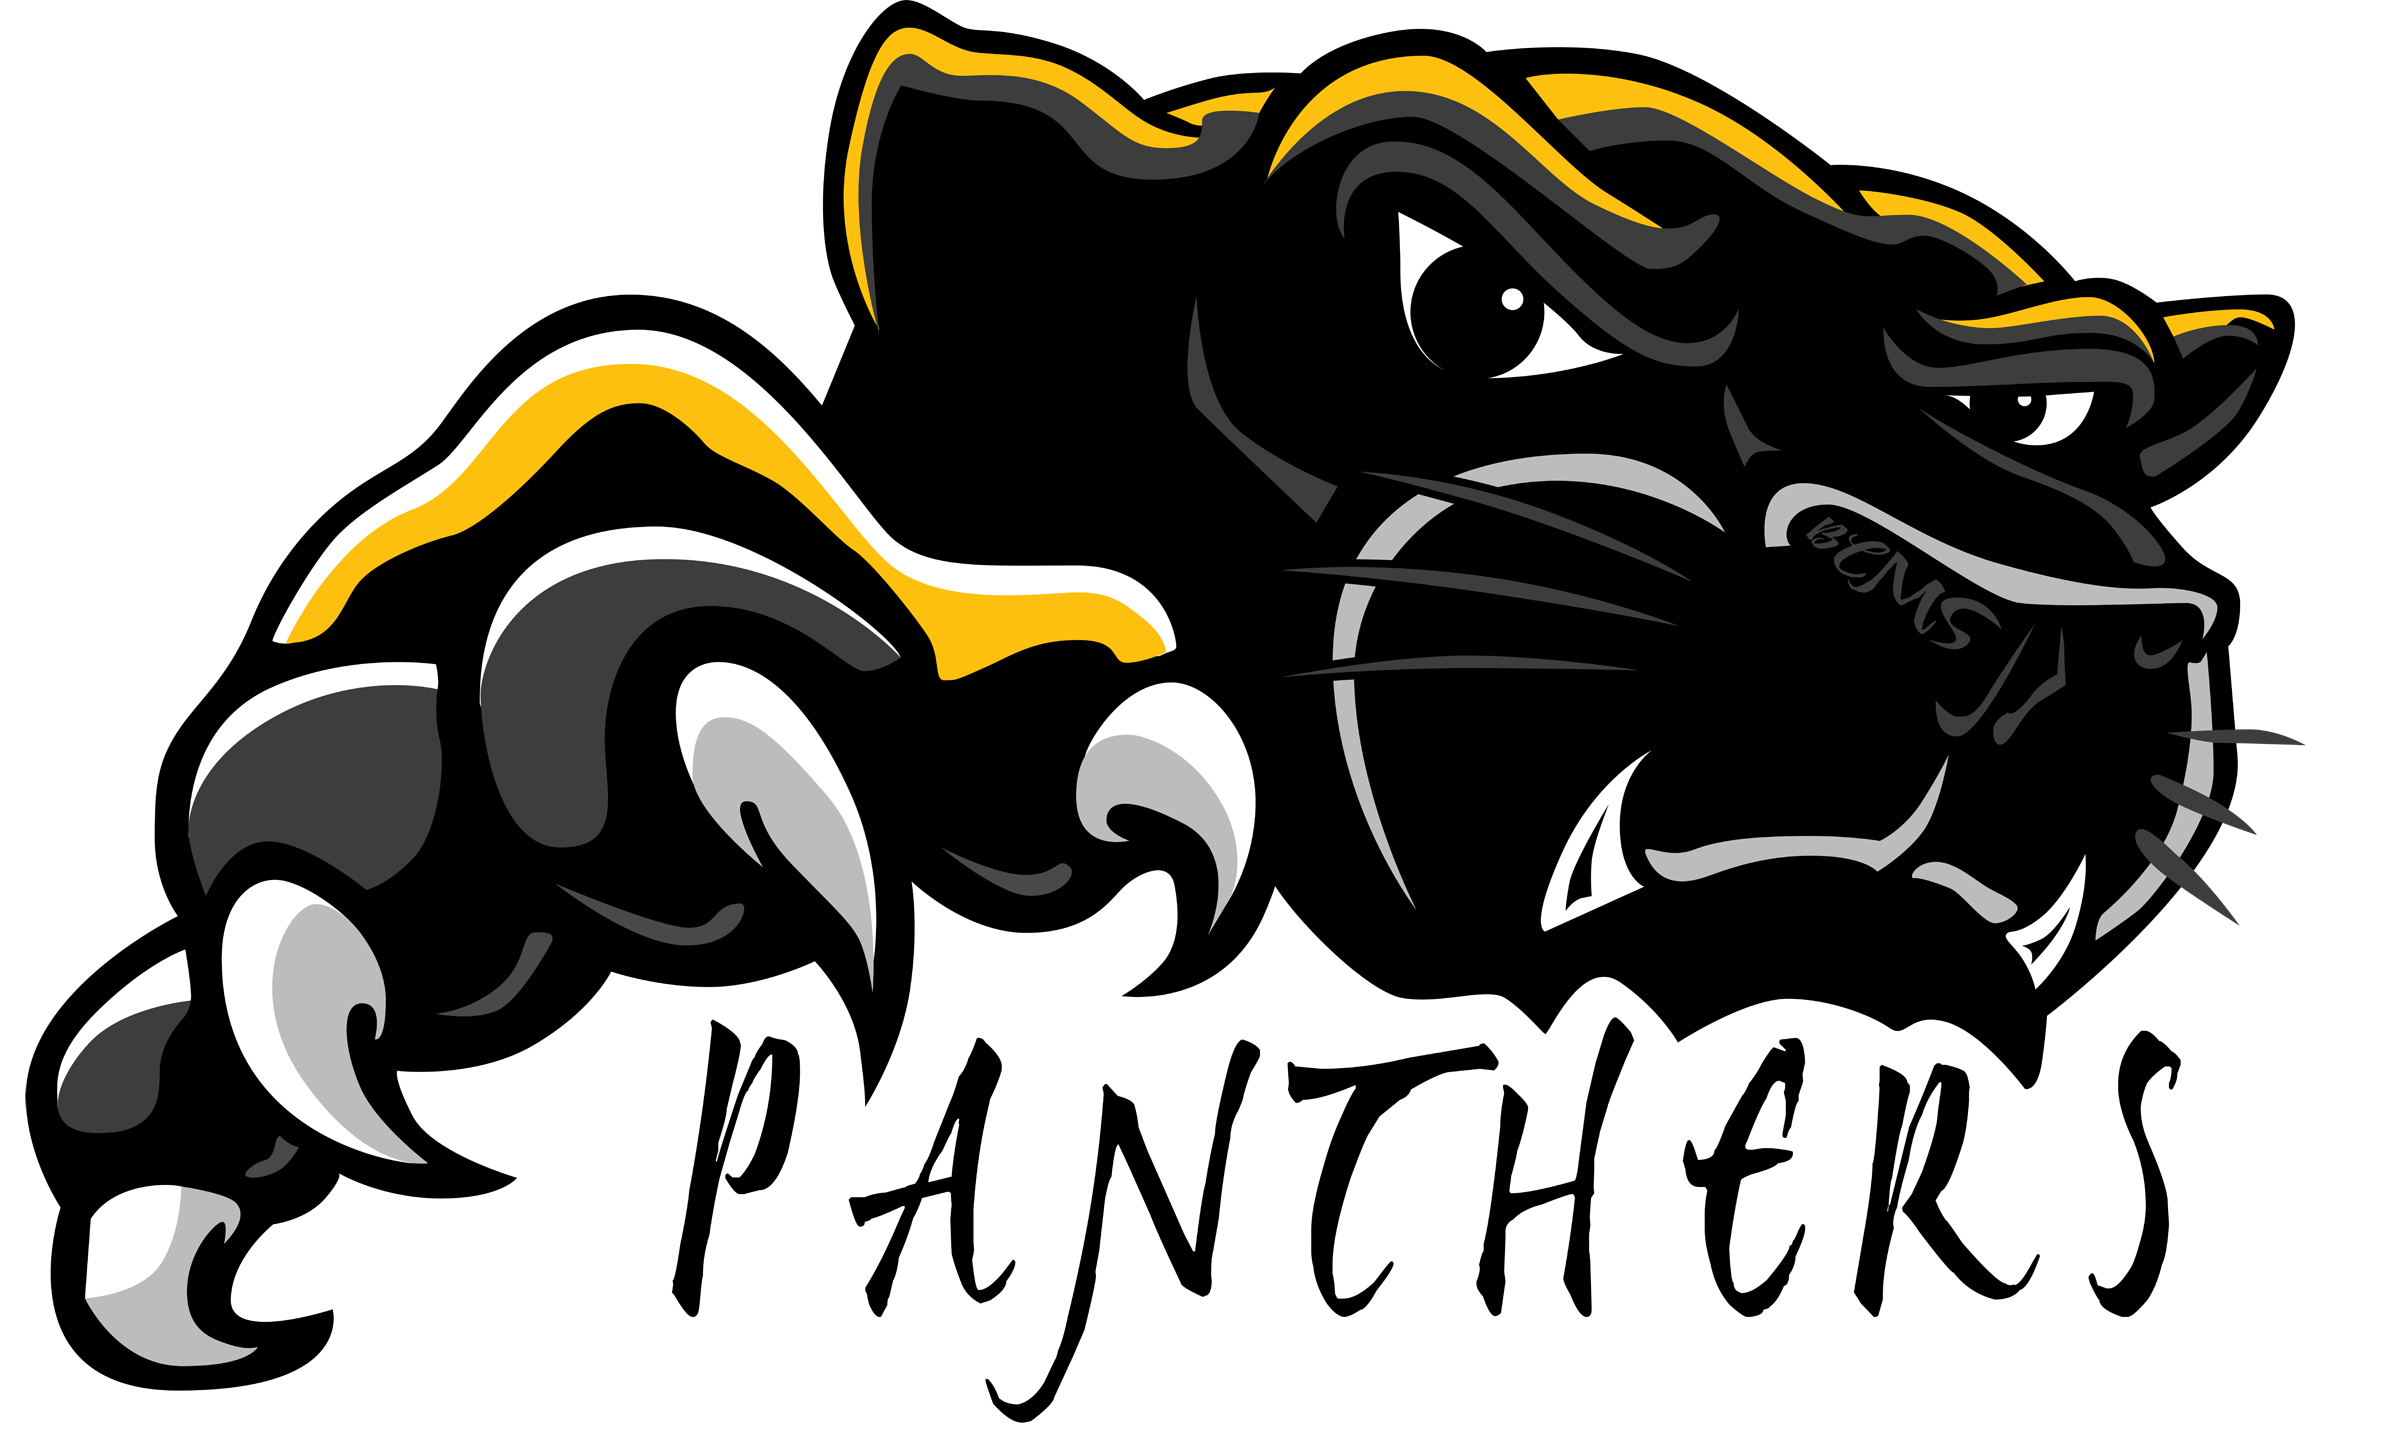 Panther logo clipart clipart kid 2